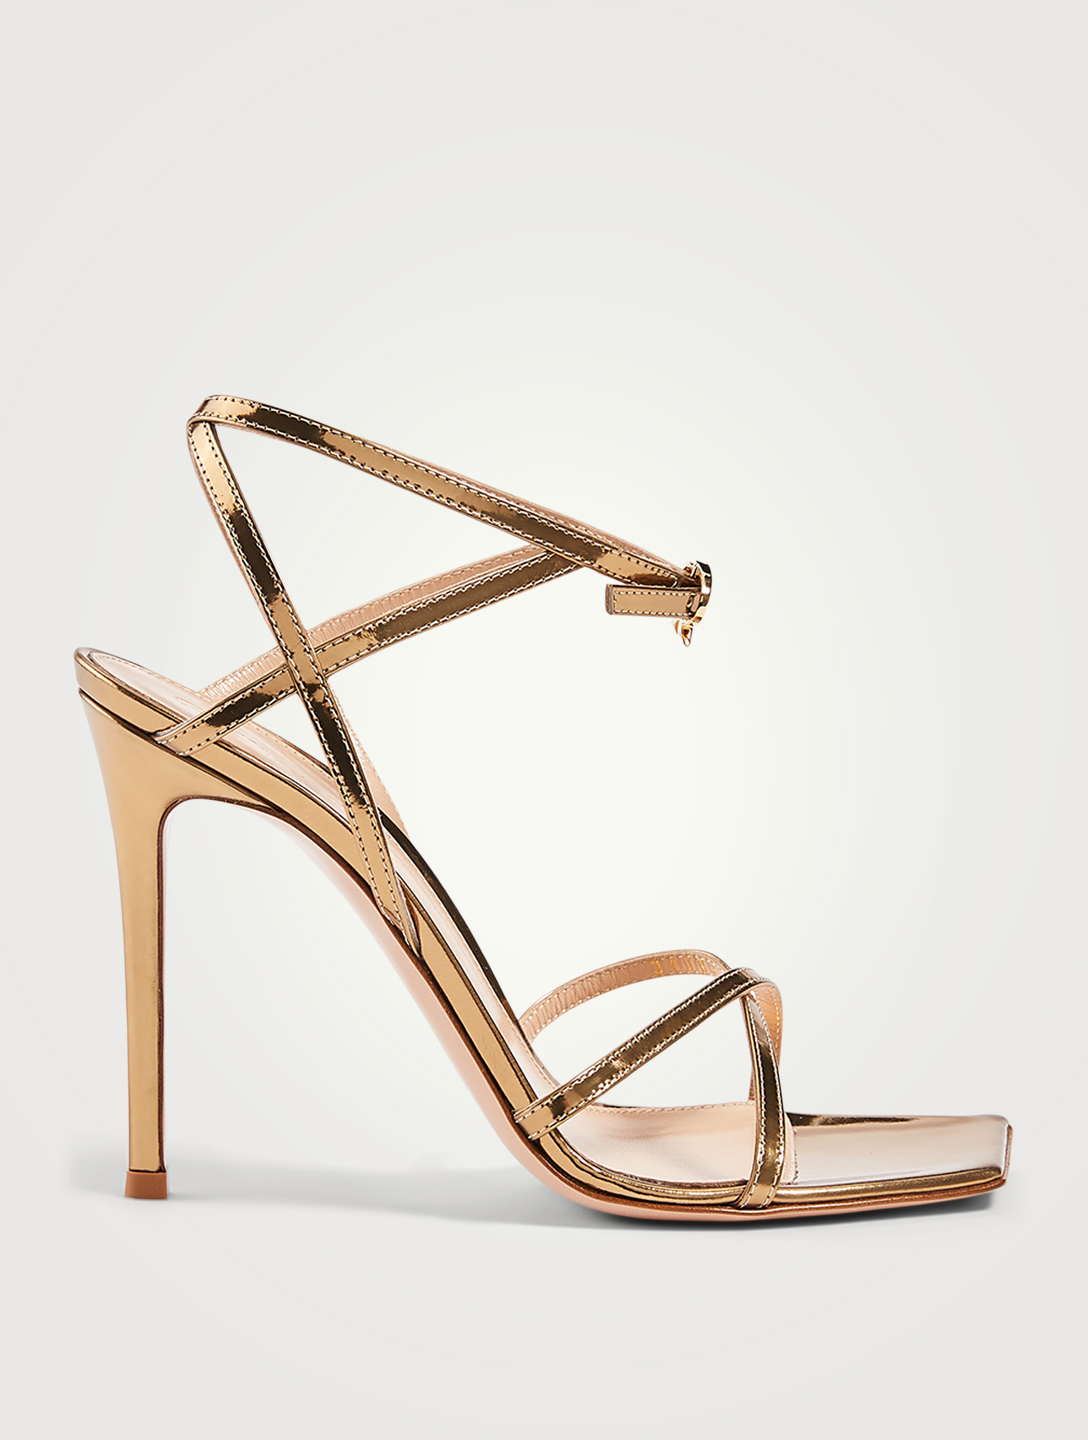 GIANVITO ROSSI Georgina Metallic Leather Heeled Sandals Women's Metallic